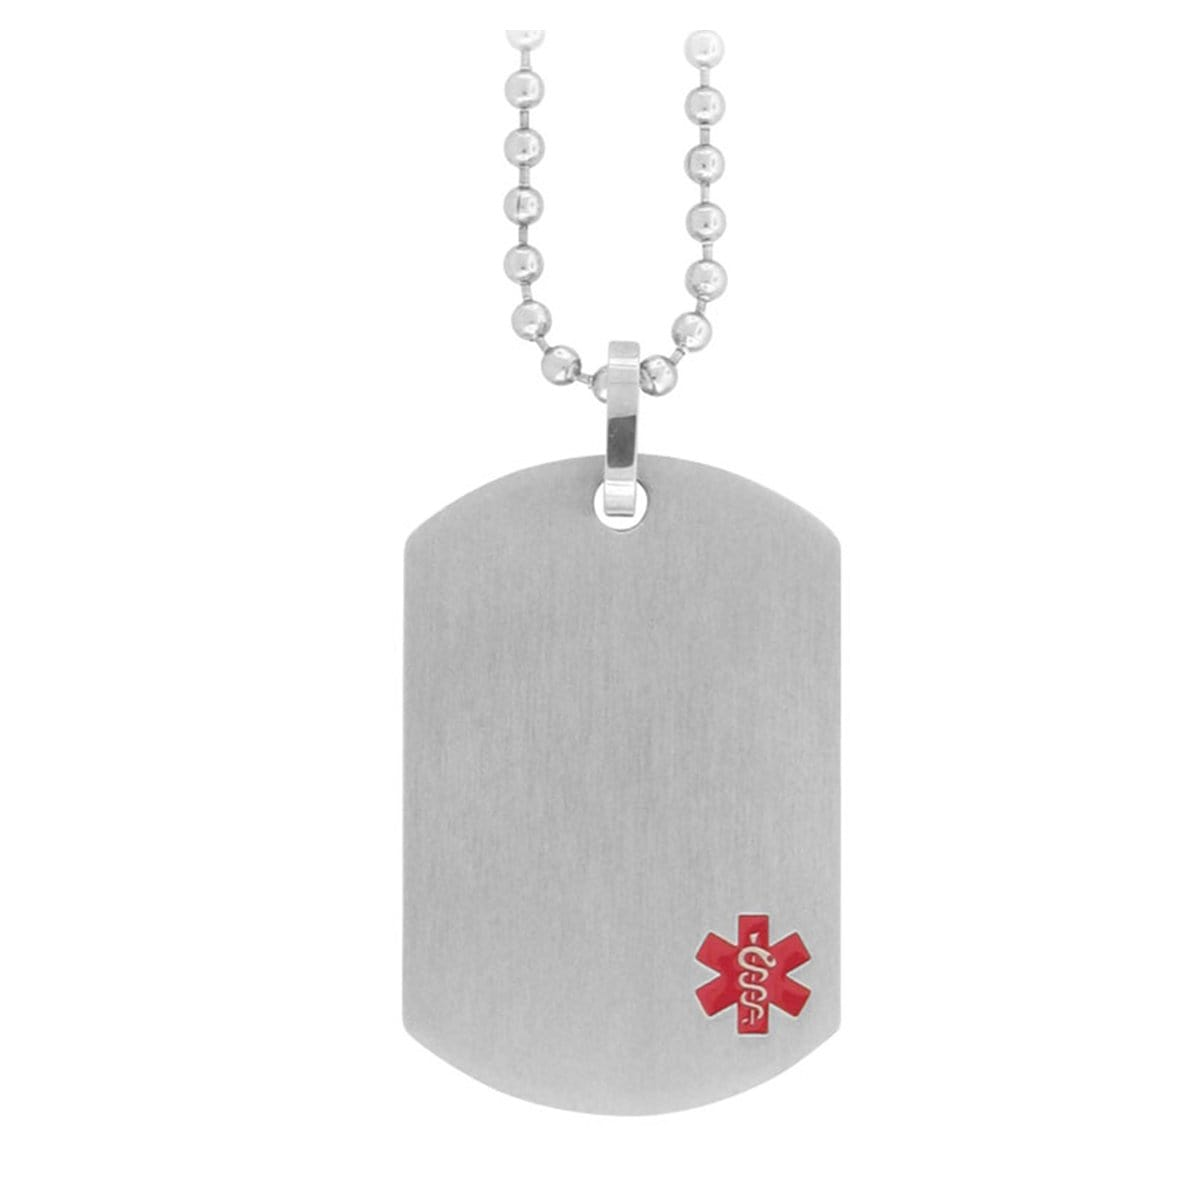 Red & Silver Stainless Steel Engraveable Medical ID Pendant & Chain